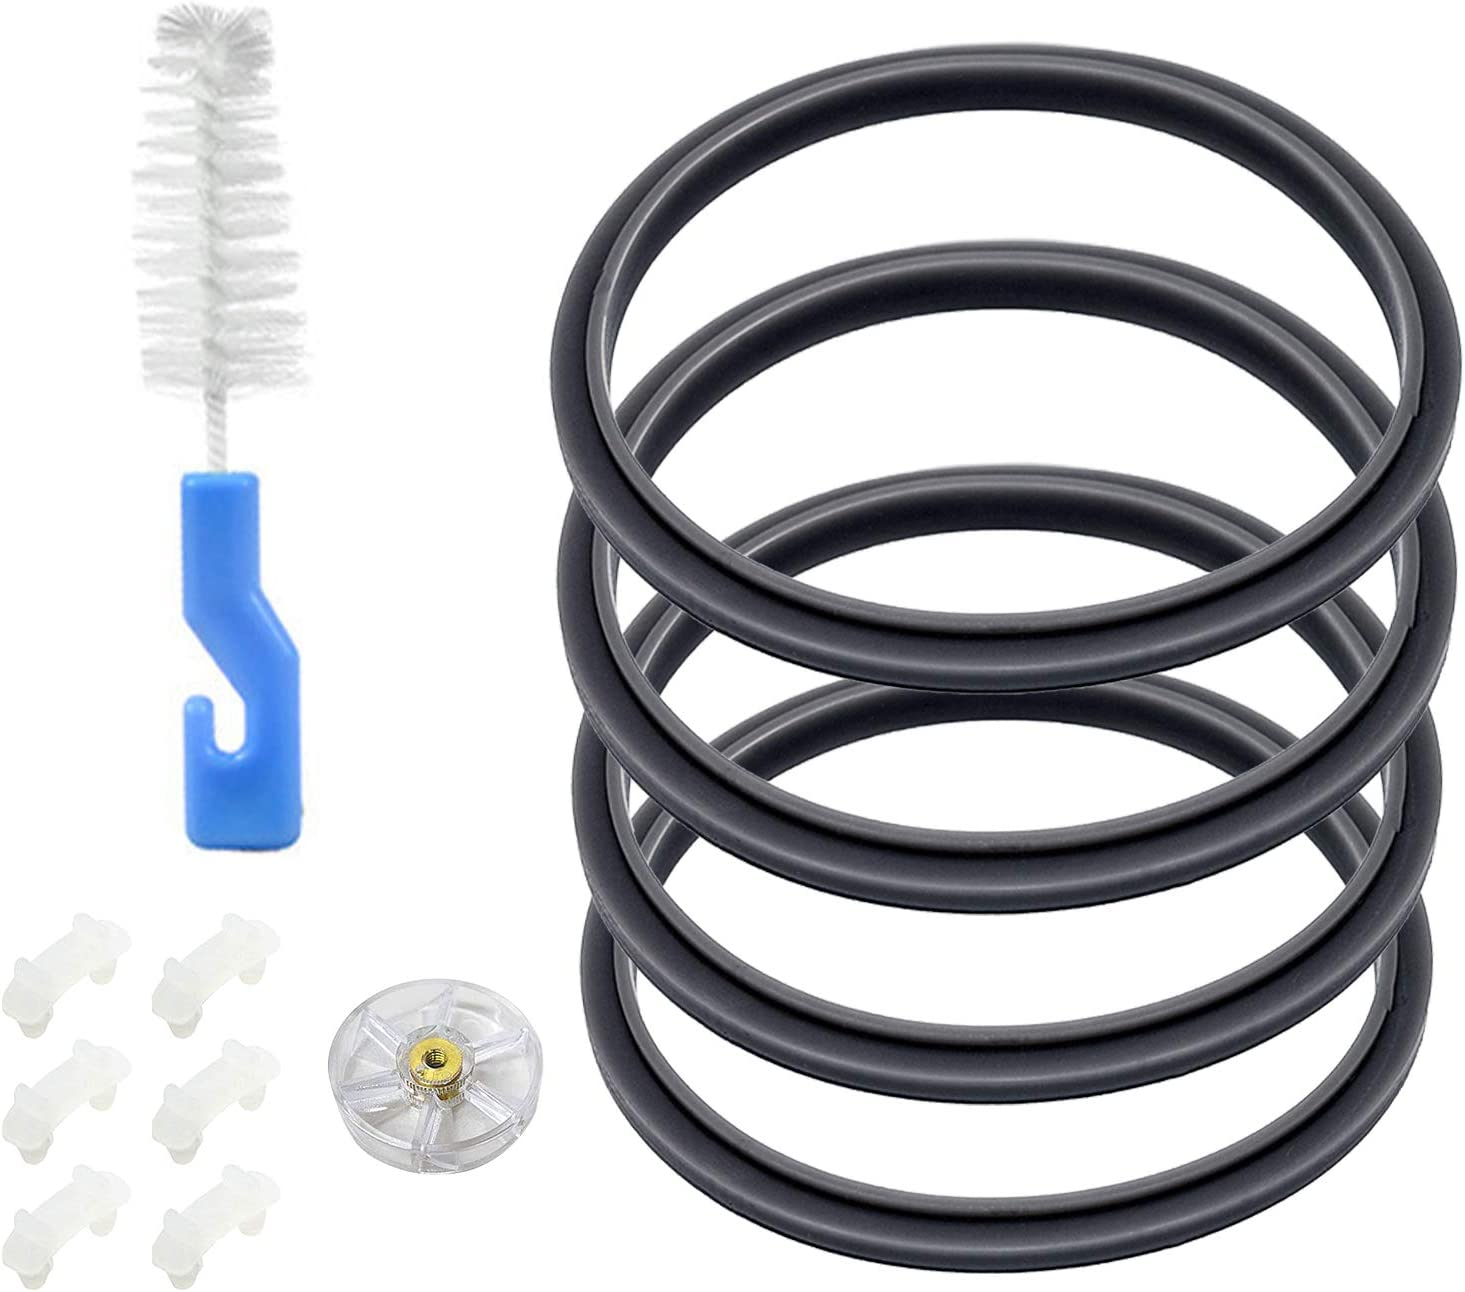 Blender Gasket Replacement Parts, Rubber O Ring Replacement for Nutribullet Blender 900W & 600W Series, Gaskets Replacement for Nutribullet Blade Including Shock Pad and Gear(12 Pieces)